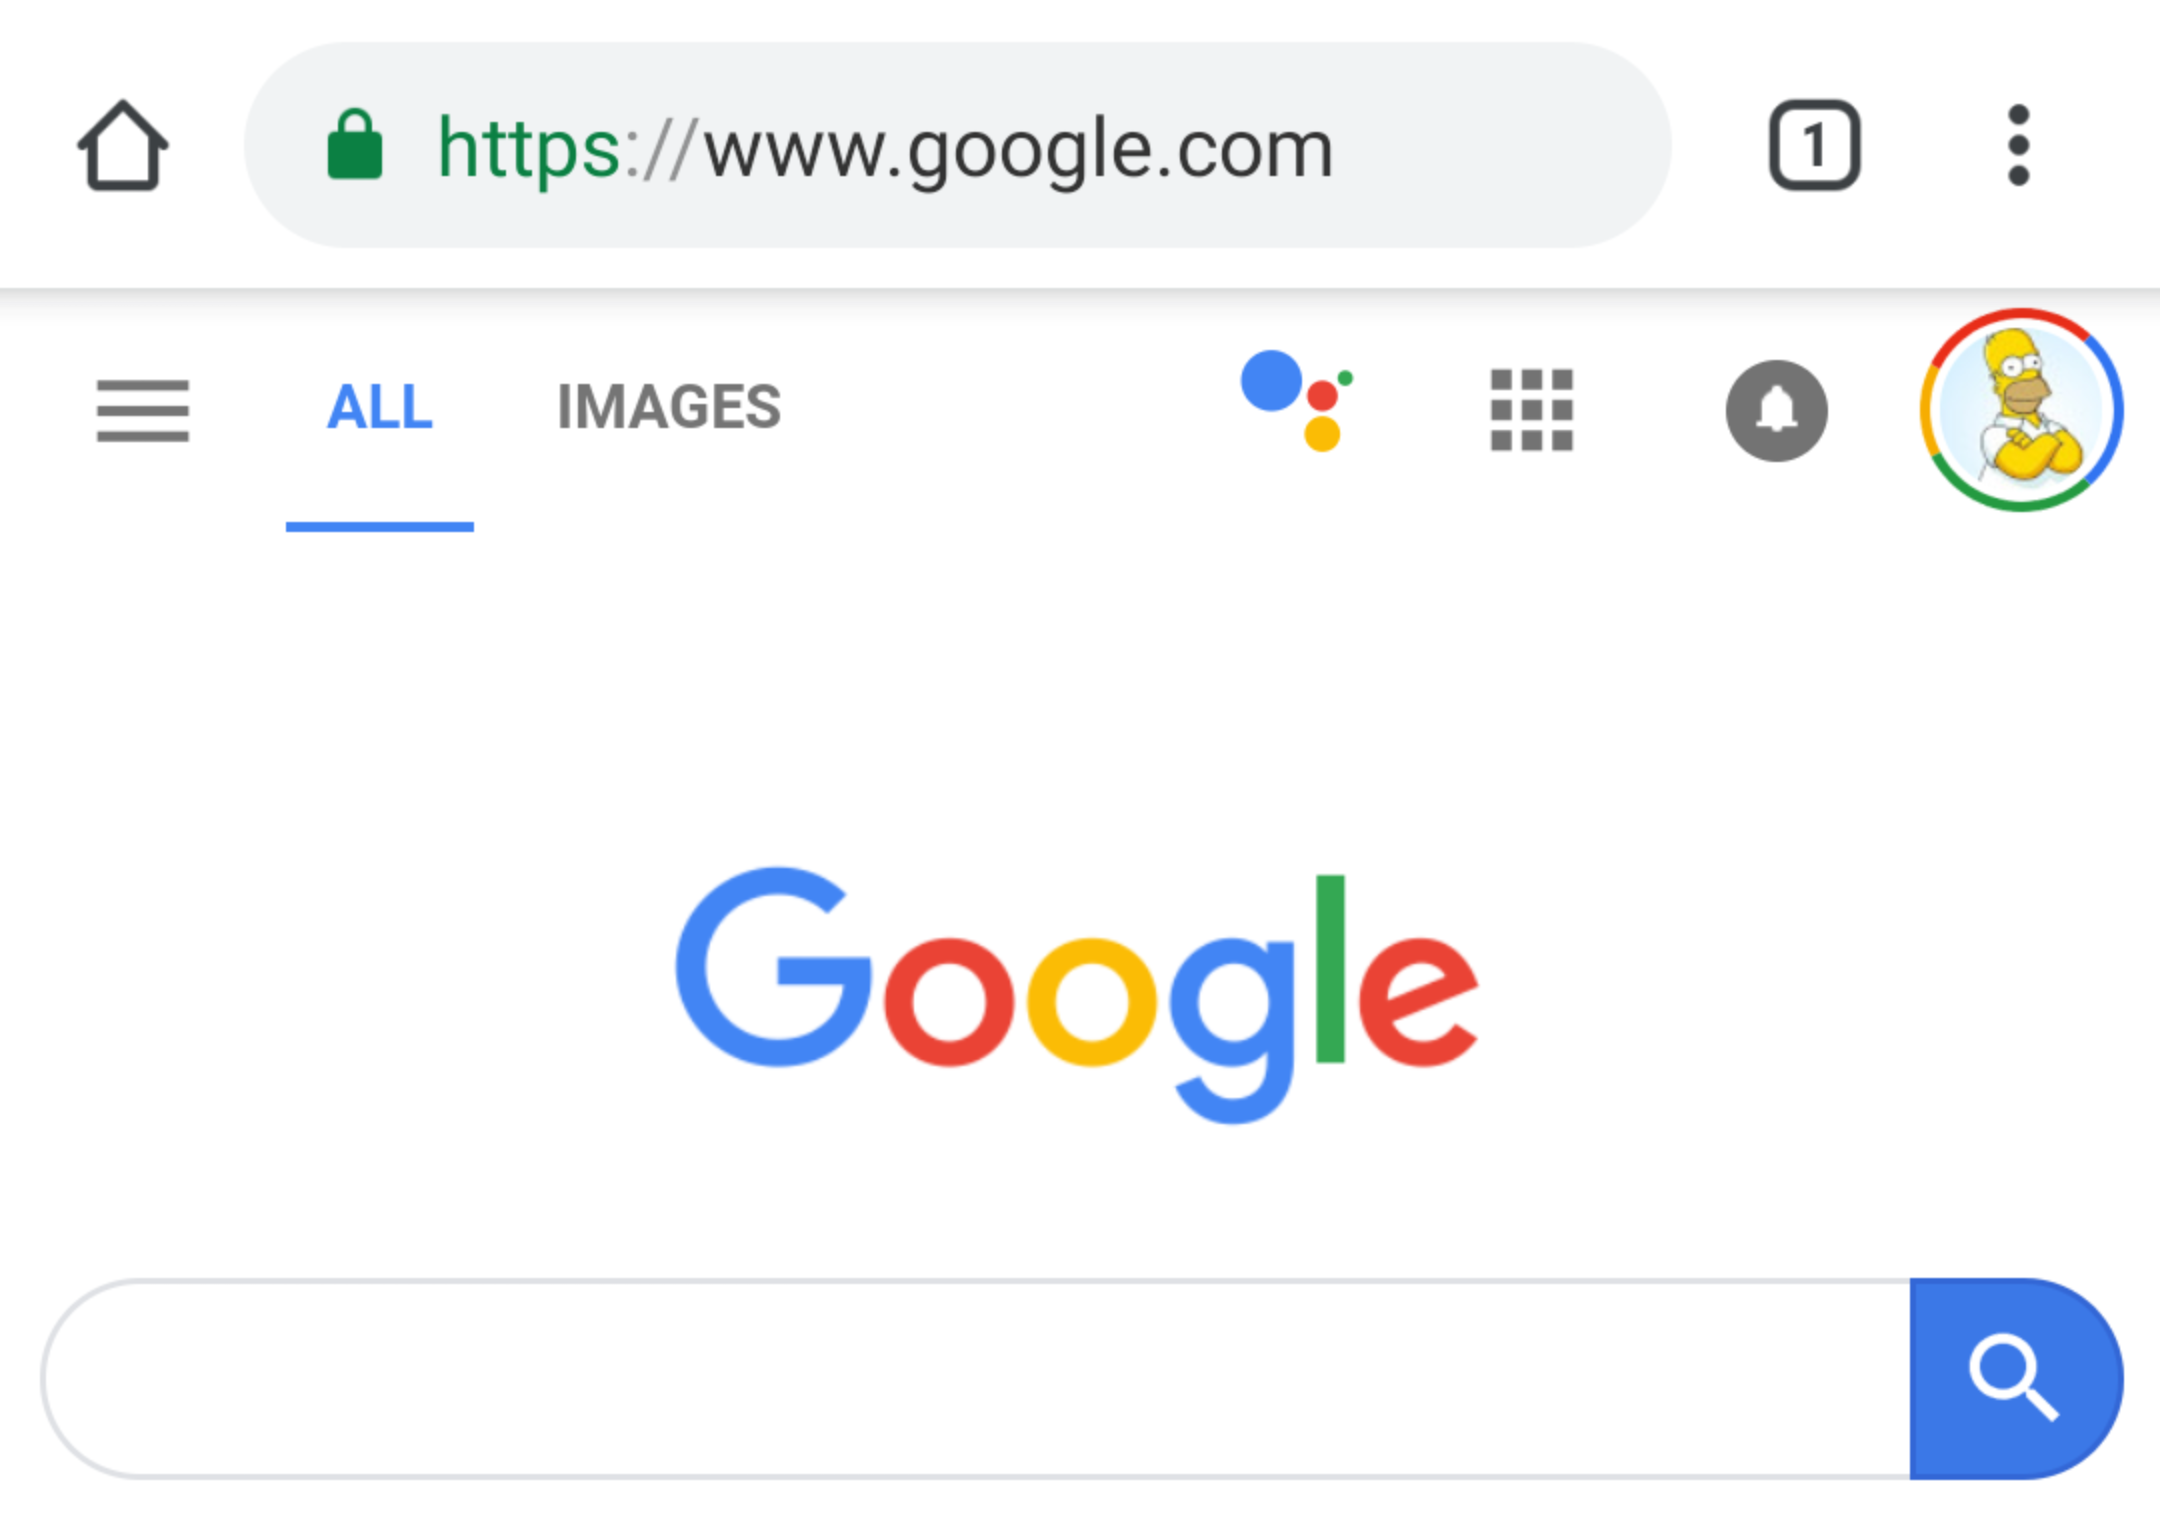 Assistant icon shows up on the Google.com mobile page